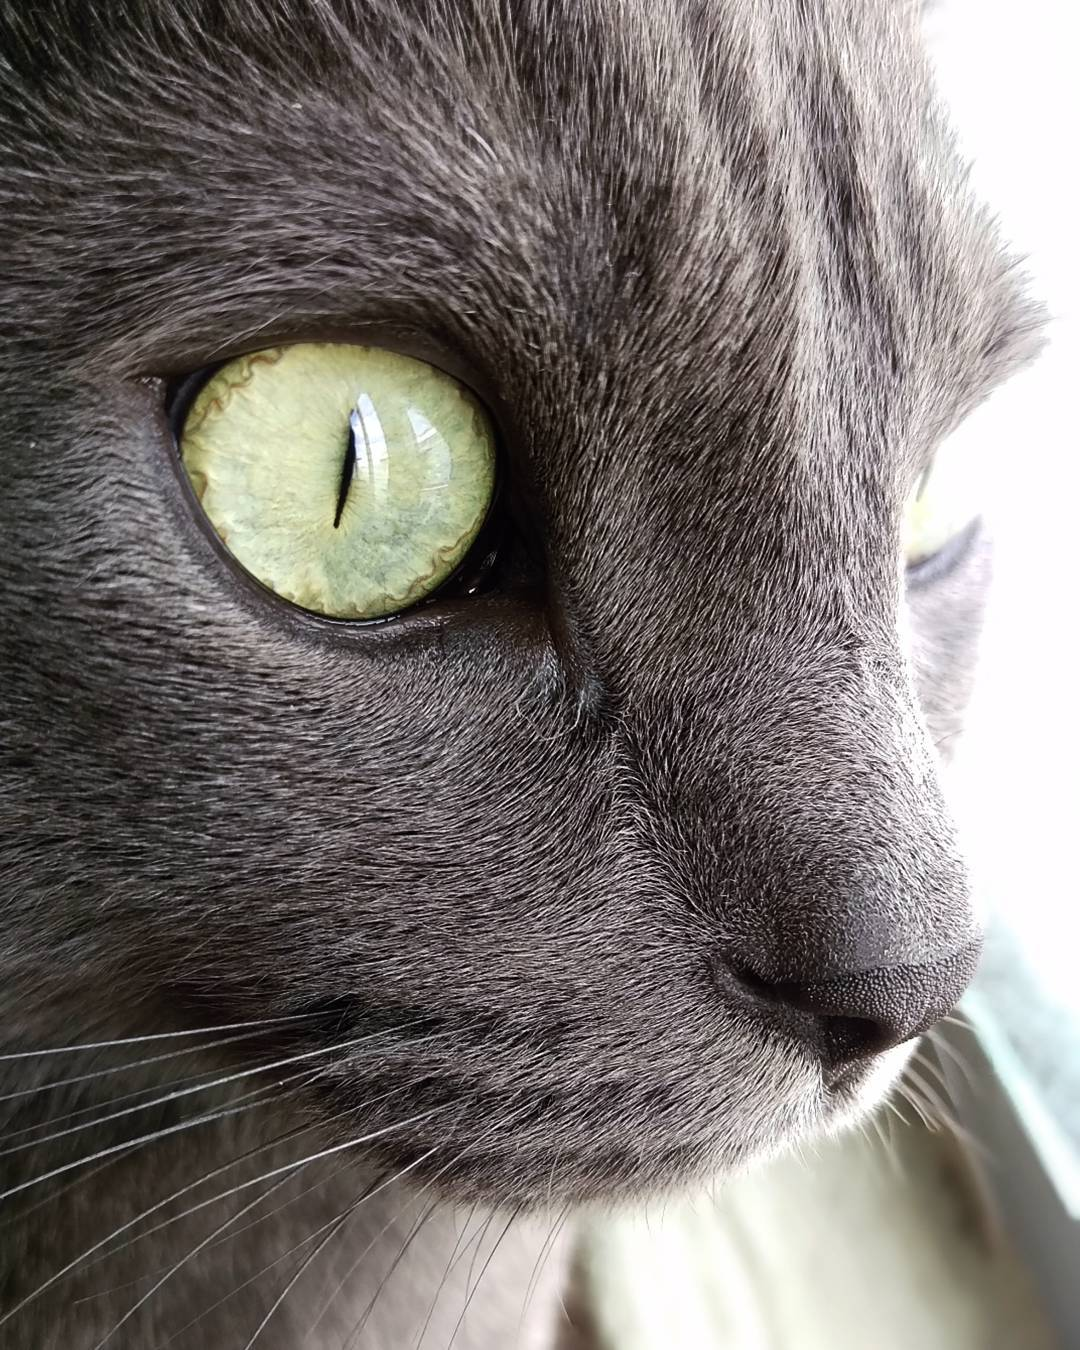 This beautiful Russian Blue cat captured on Clau S.'s #HTC. #ShotonHTC https://t.co/xK9LJcN2DU